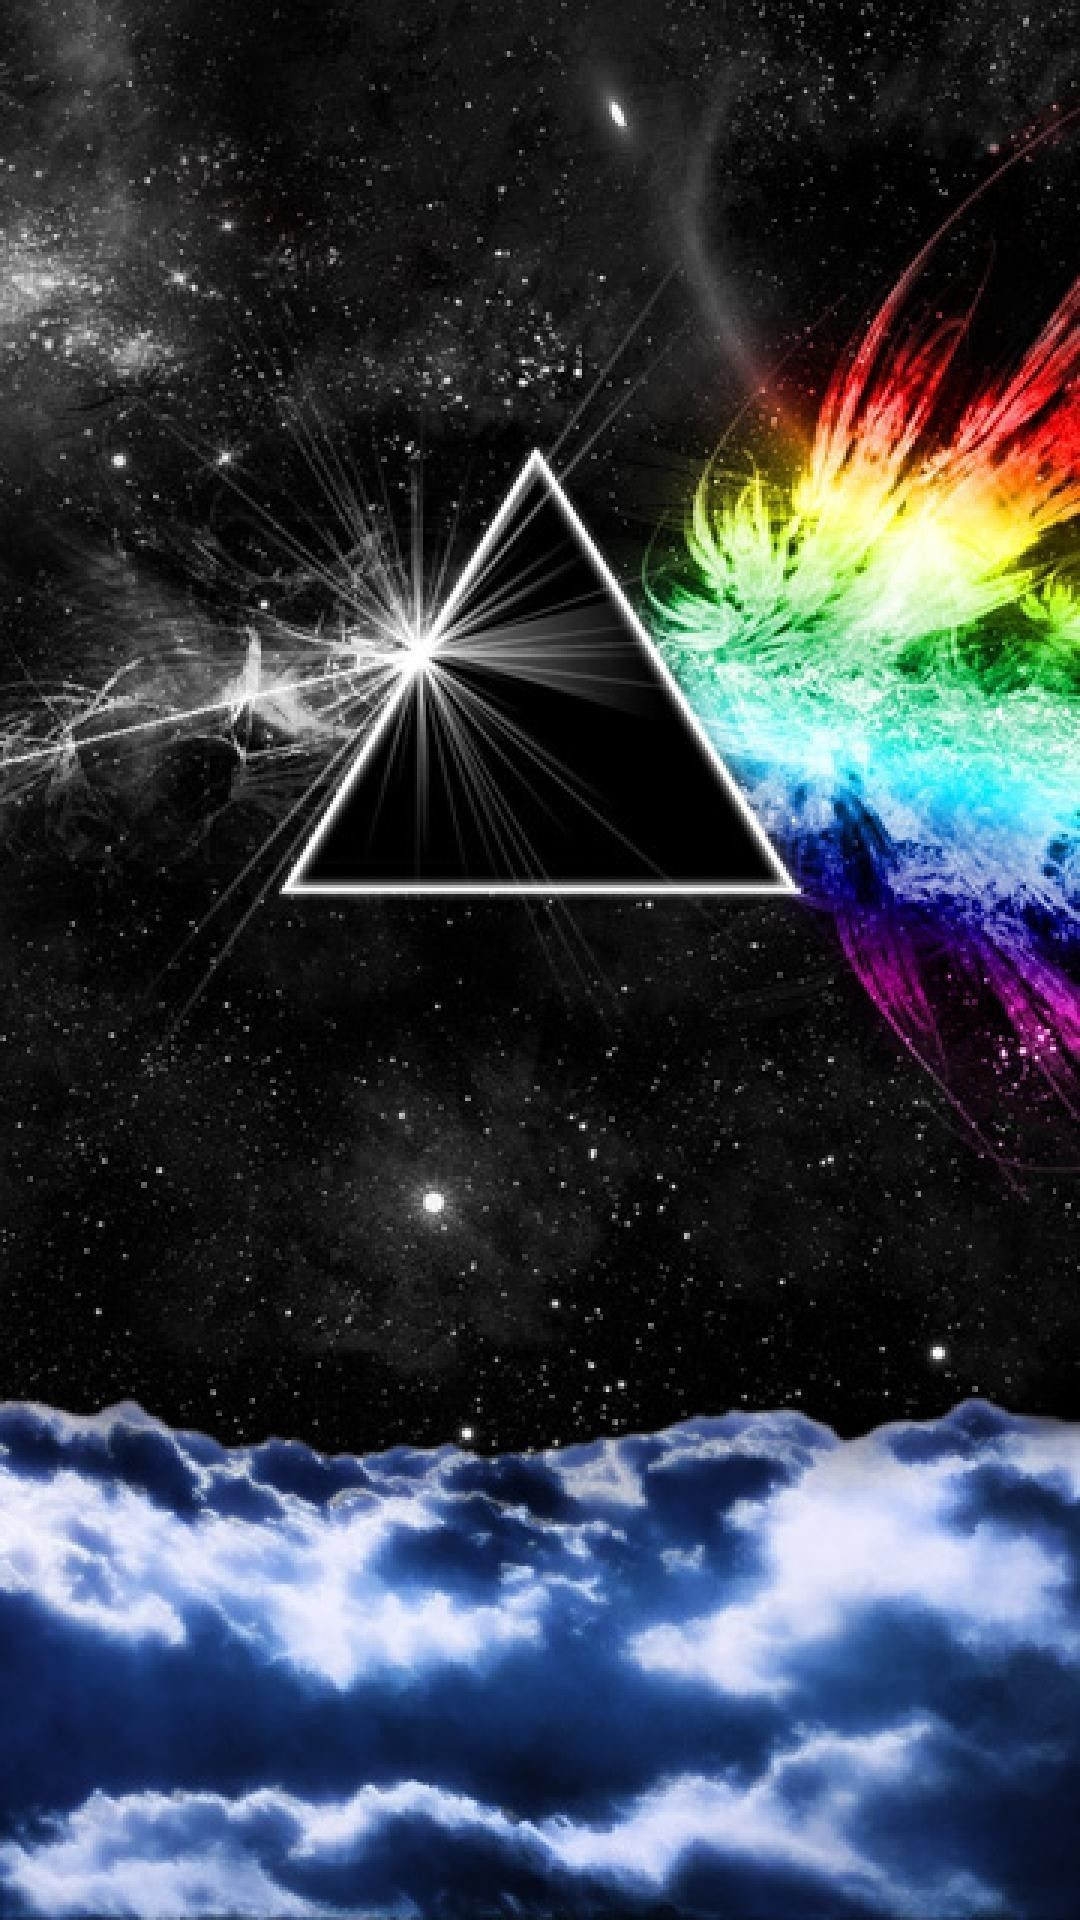 1080x1920 pink floyd | Pink Floyd Wallpapers Screensavers (74+ images)